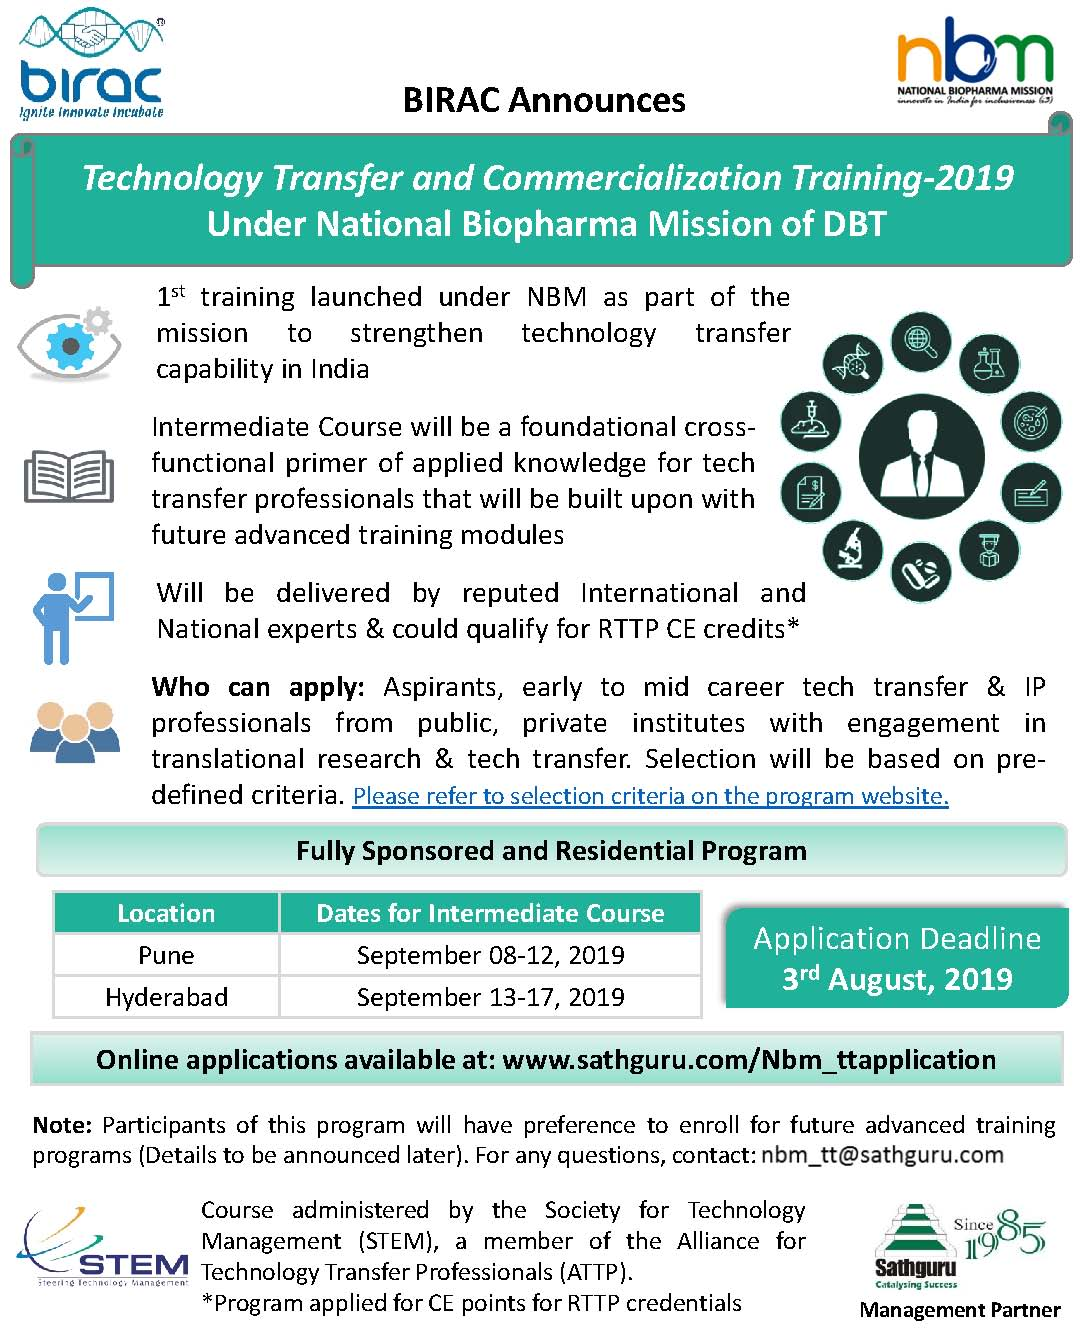 Technology Transfer & Commercialization Training (Last Date